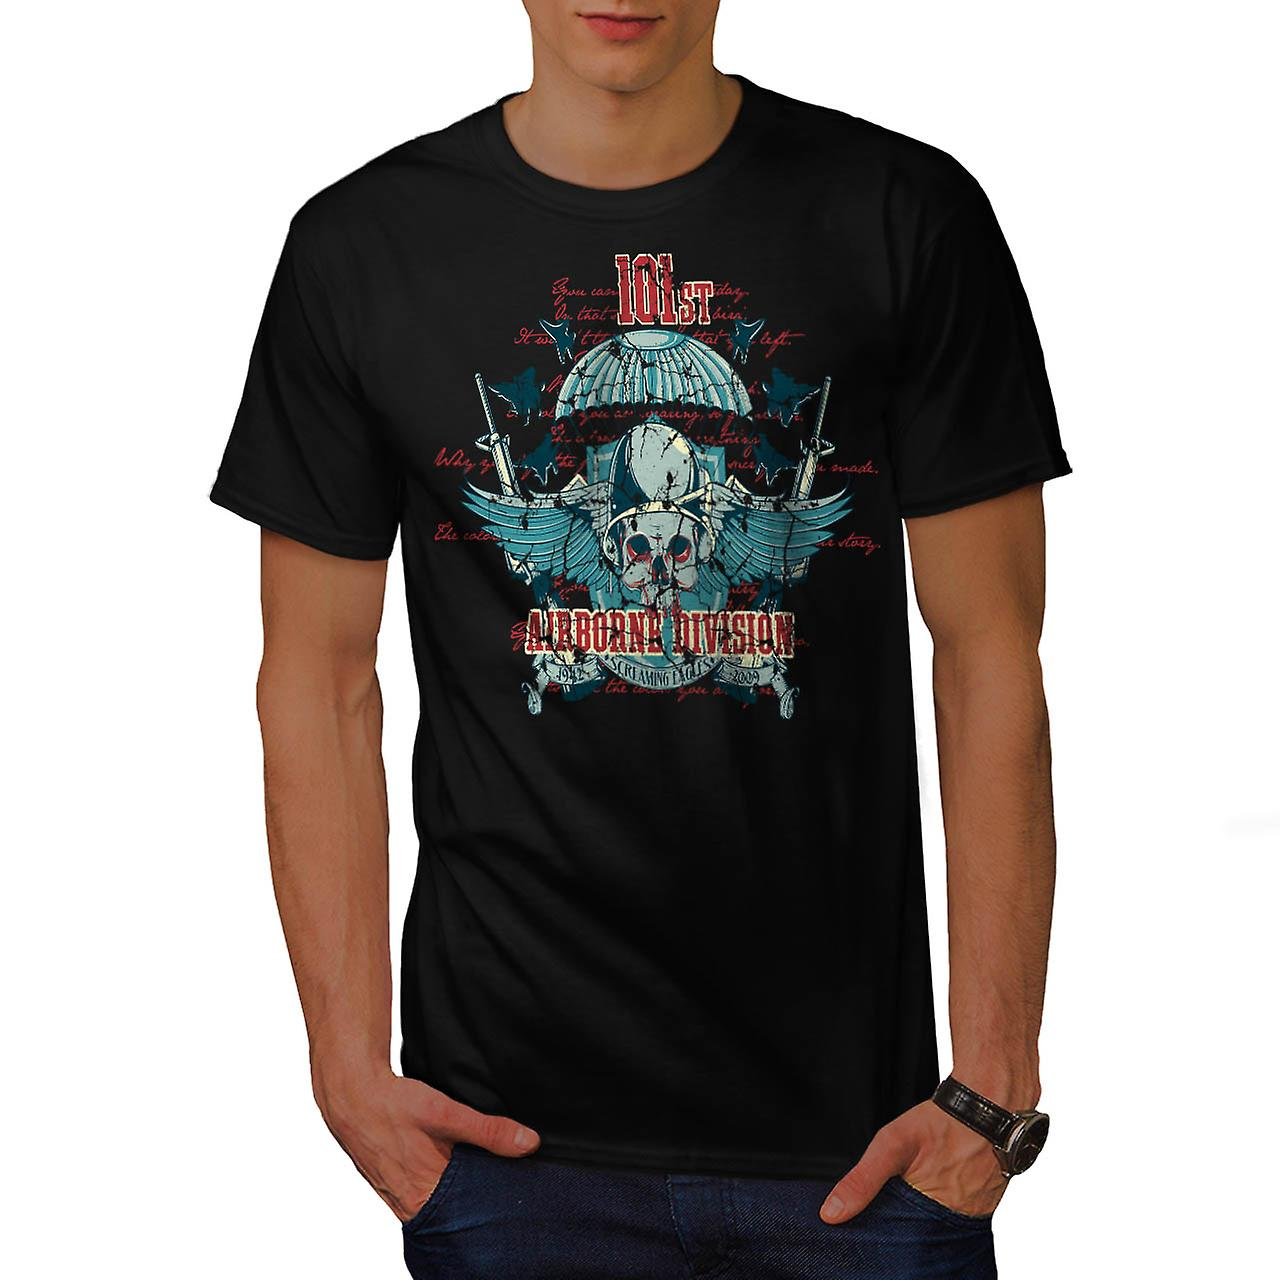 Airborne Division Fly War Flight Men Black T-shirt | Wellcoda